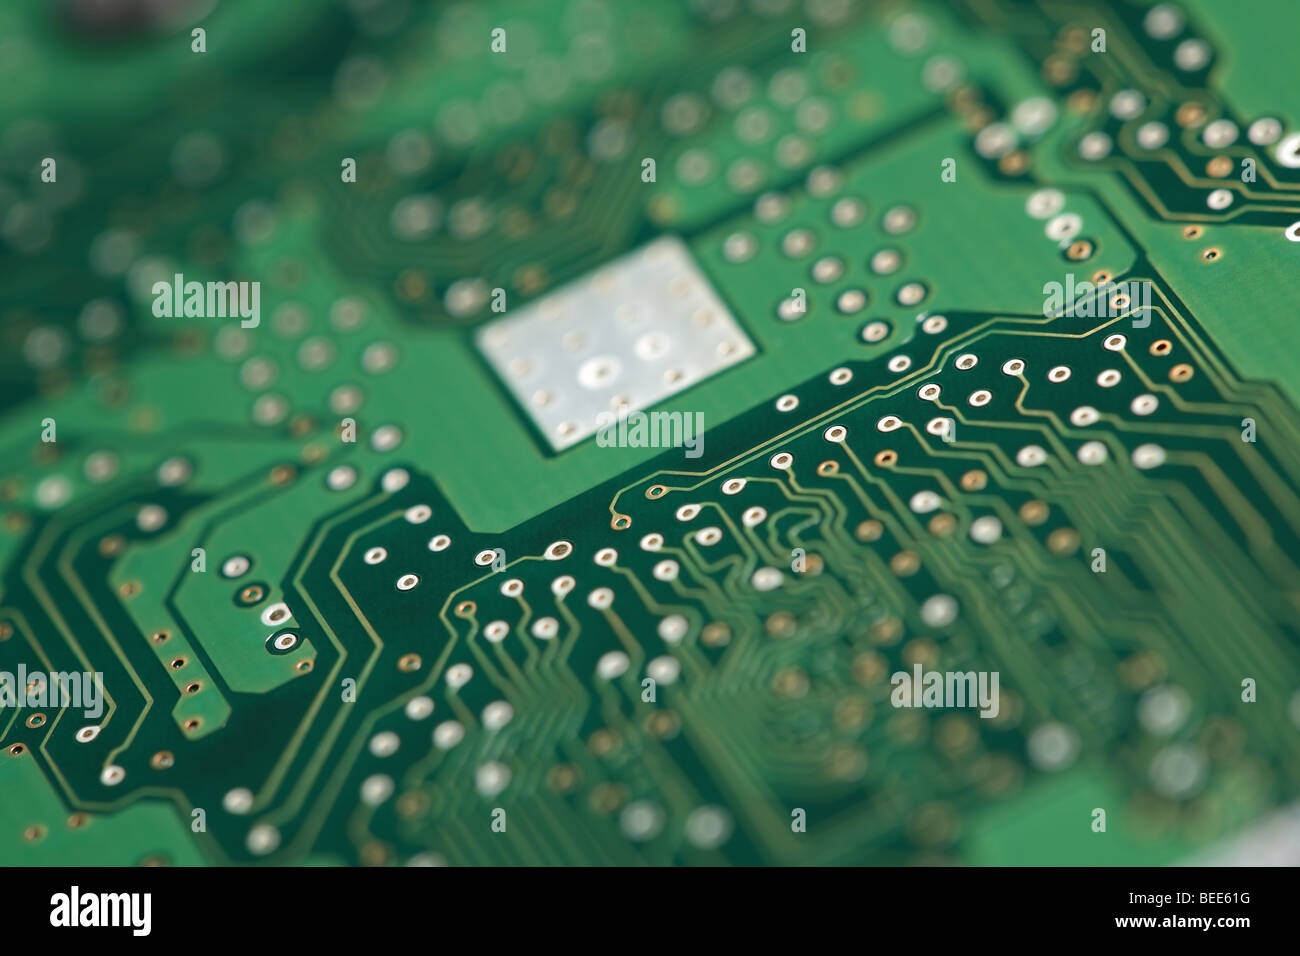 Micro chip on system board - Stock Image